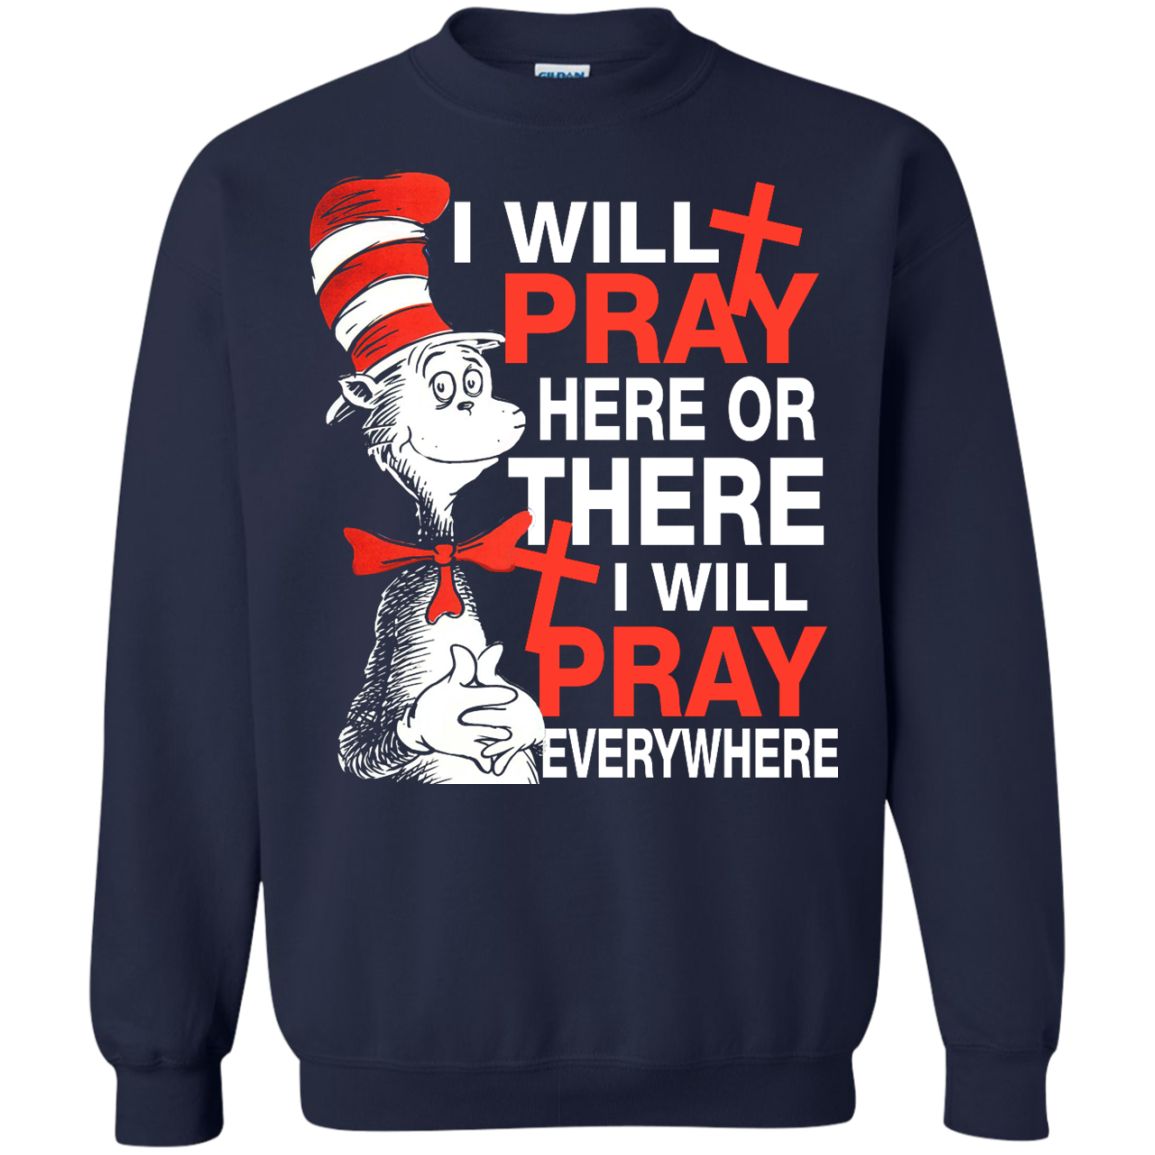 Dr  Seuss: I Will Pray Here Or There I Will Pray Everywhere shirt